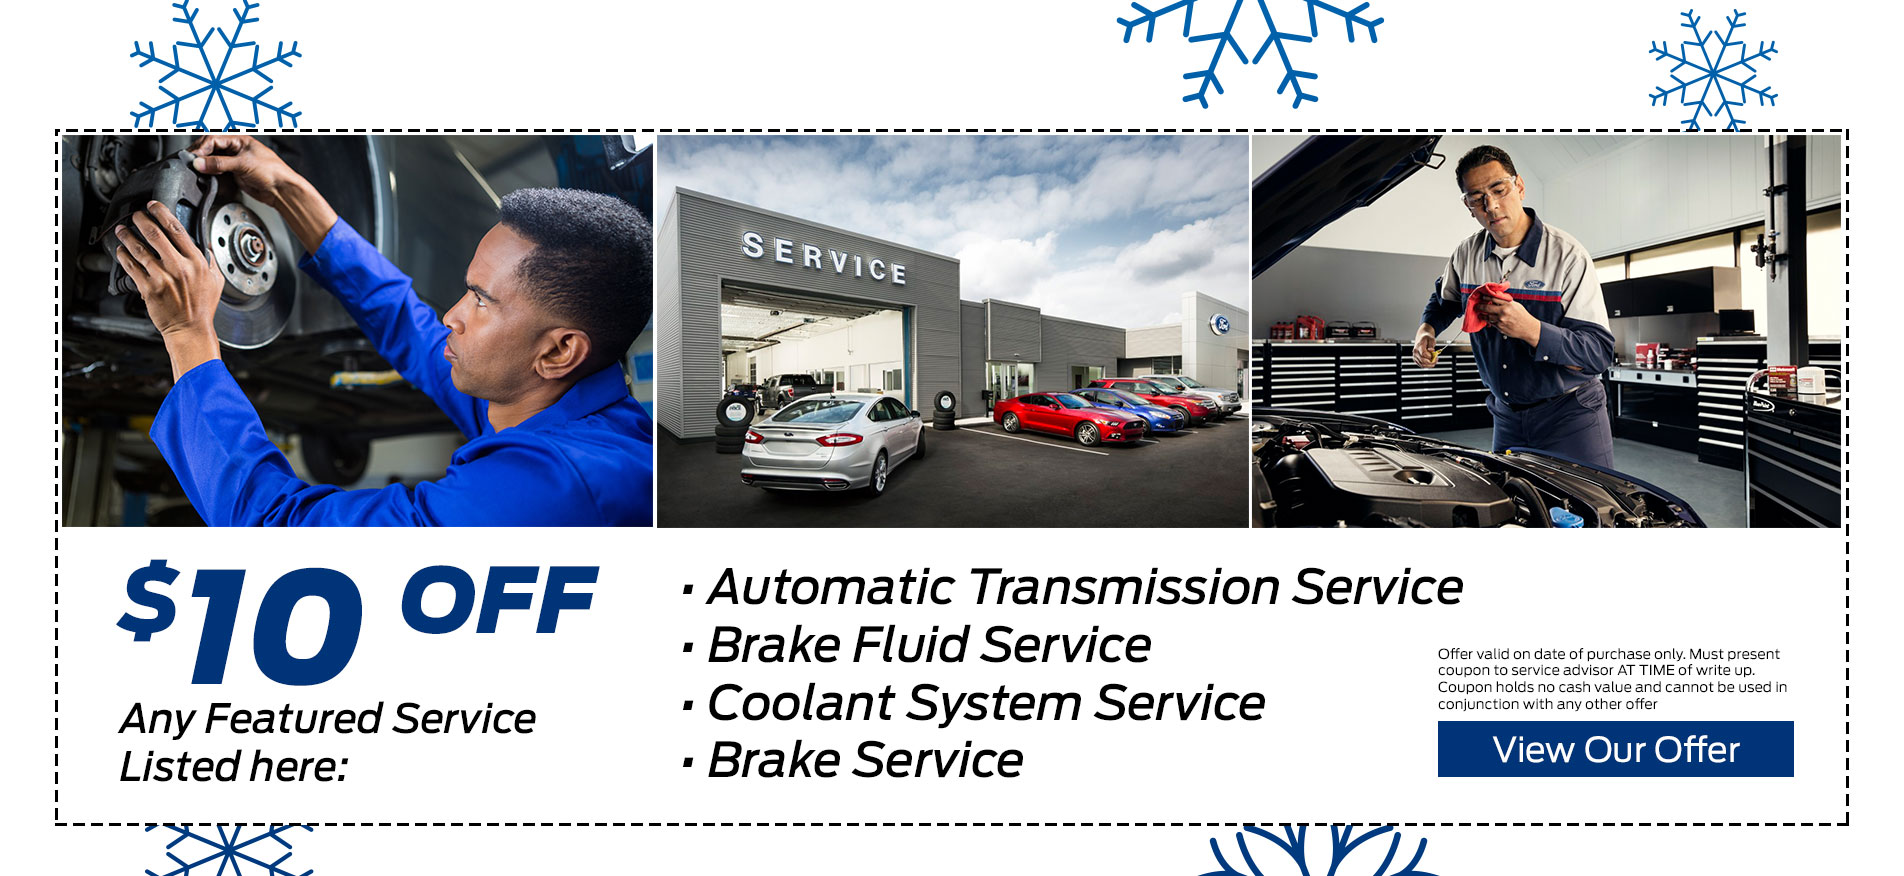 Brant County Ford - Service Coupon